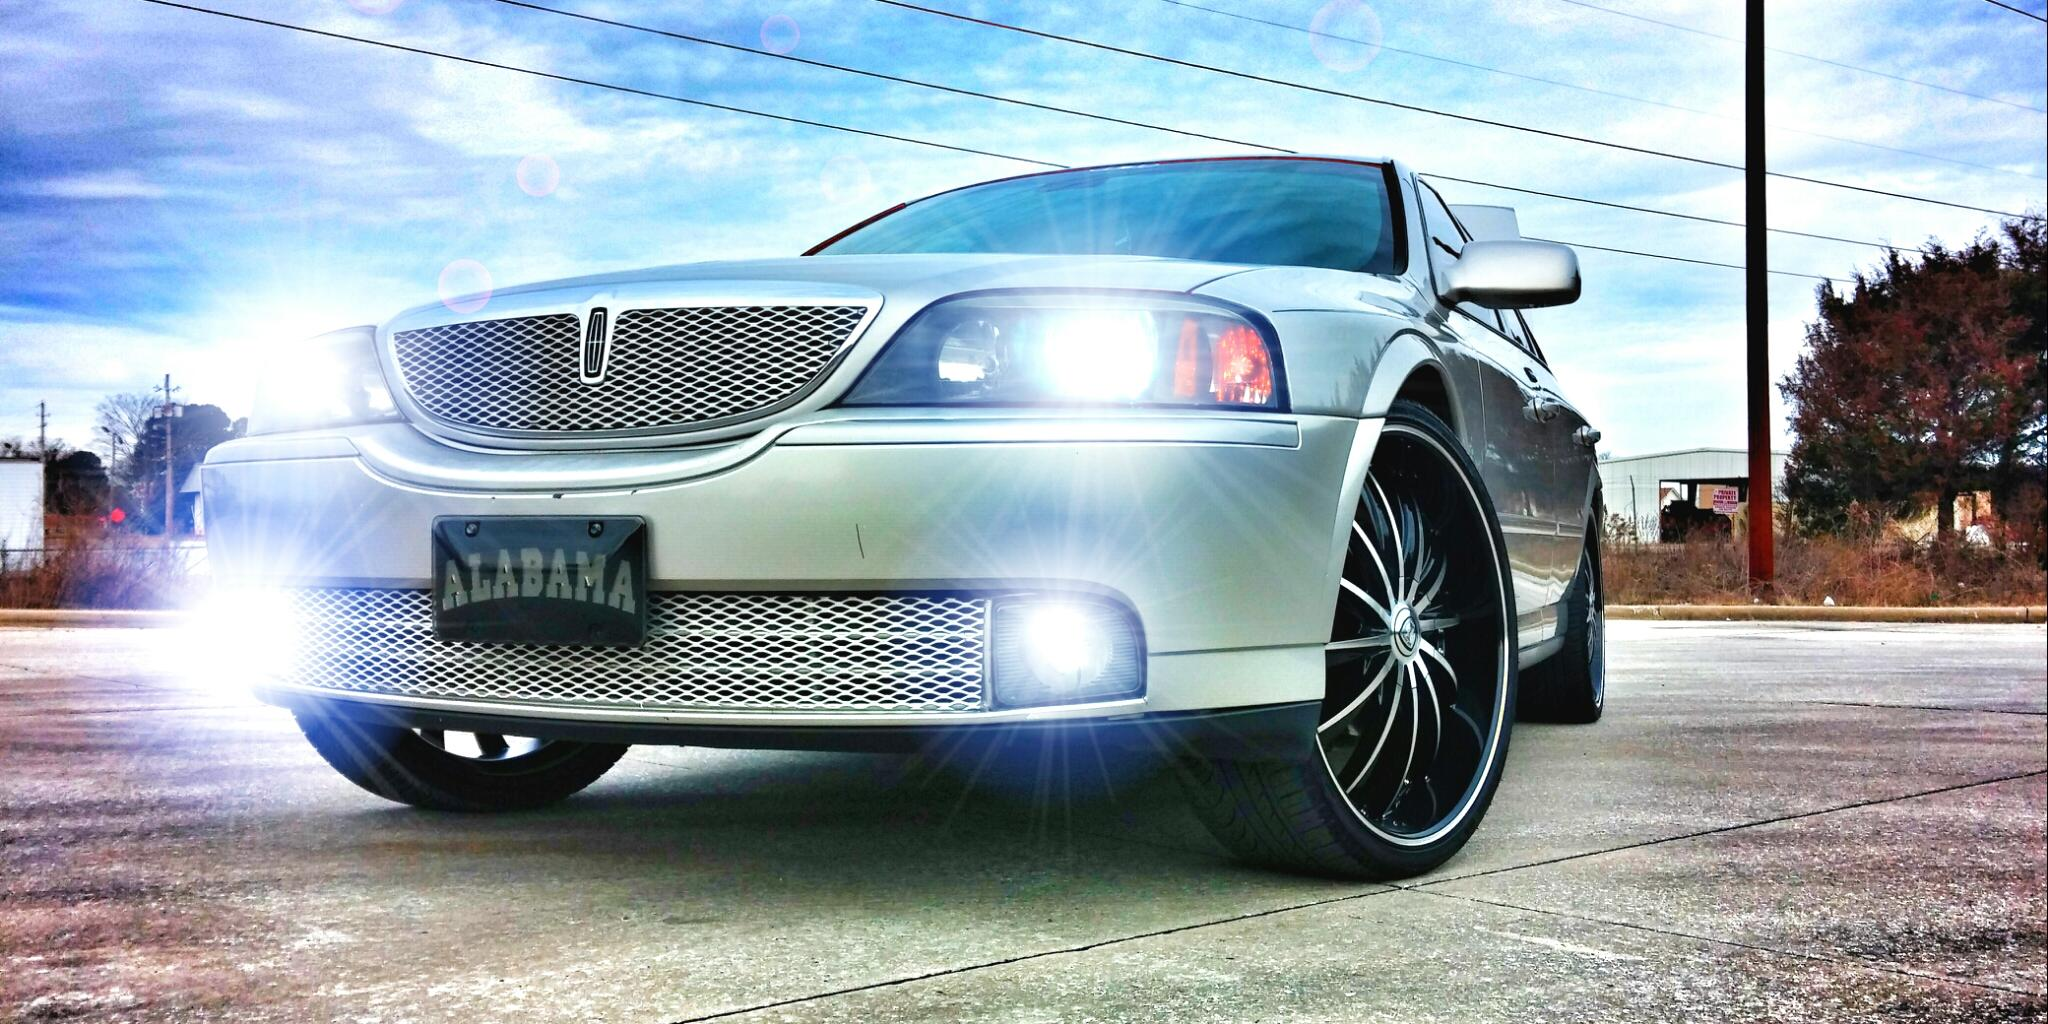 GeRsH22s 2004 Lincoln LS